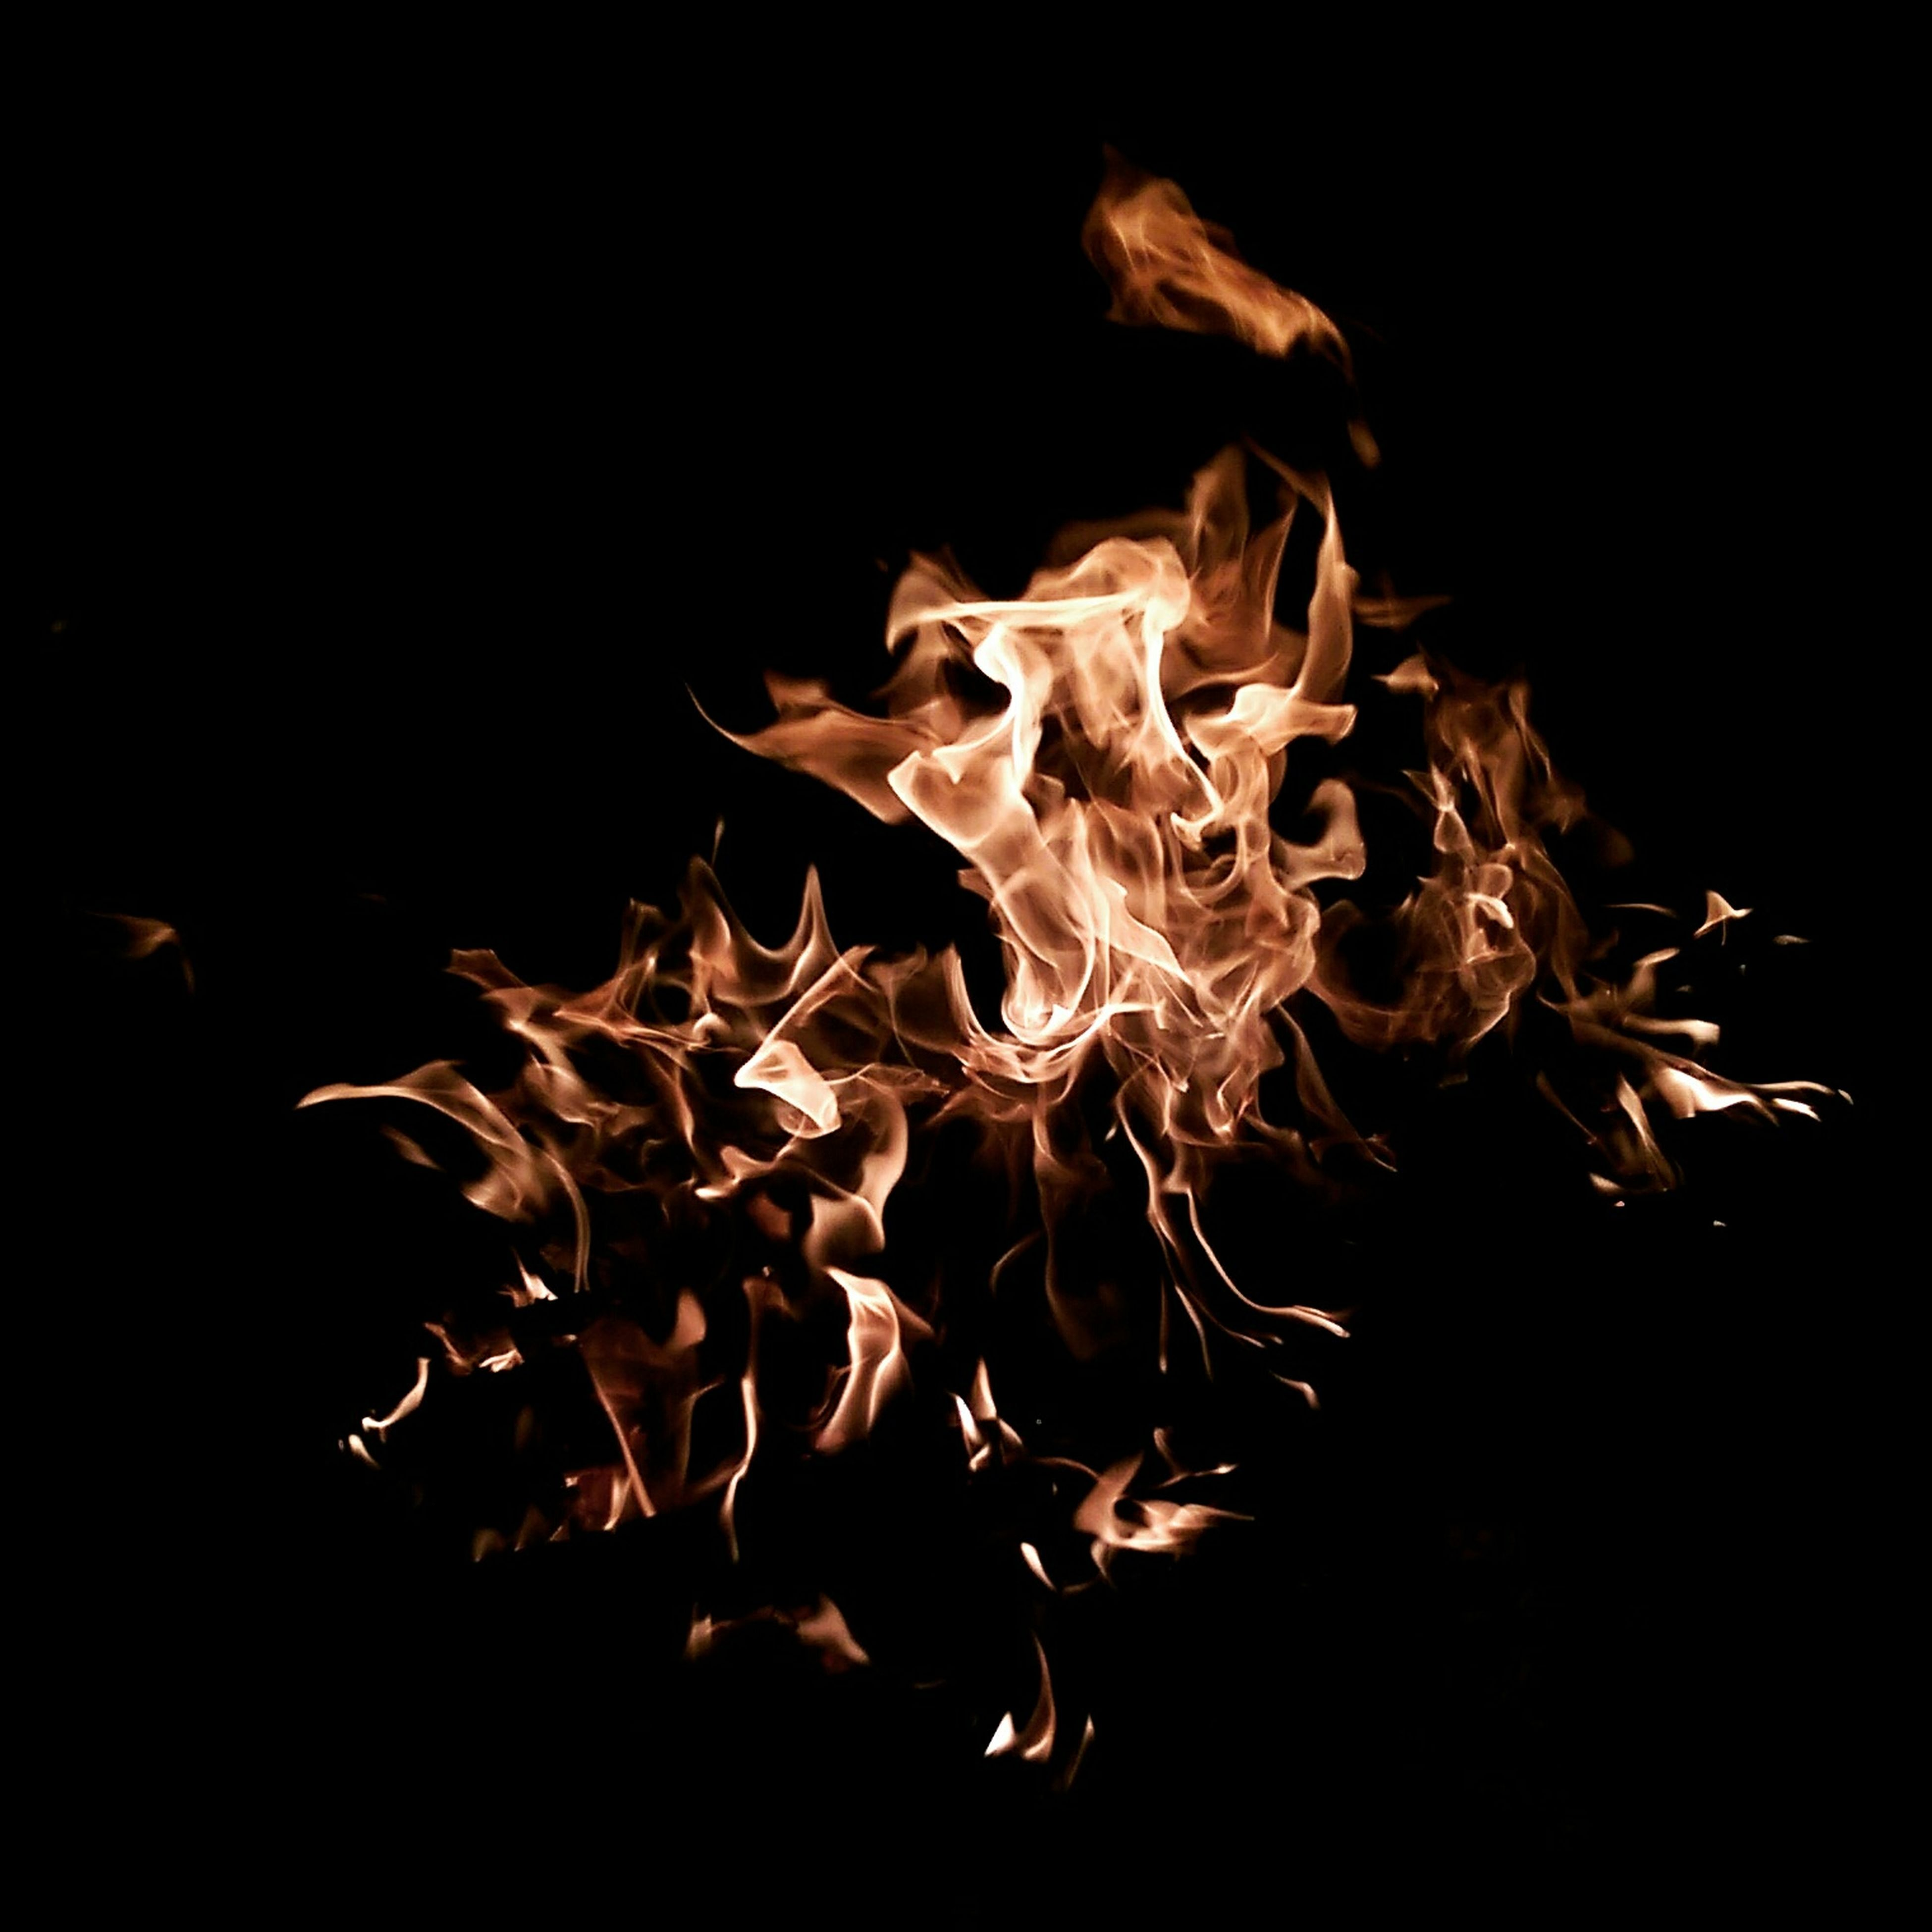 black background, night, studio shot, dark, copy space, close-up, nature, no people, dry, glowing, outdoors, heat - temperature, burning, light - natural phenomenon, yellow, fire - natural phenomenon, flame, beauty in nature, danger, plant